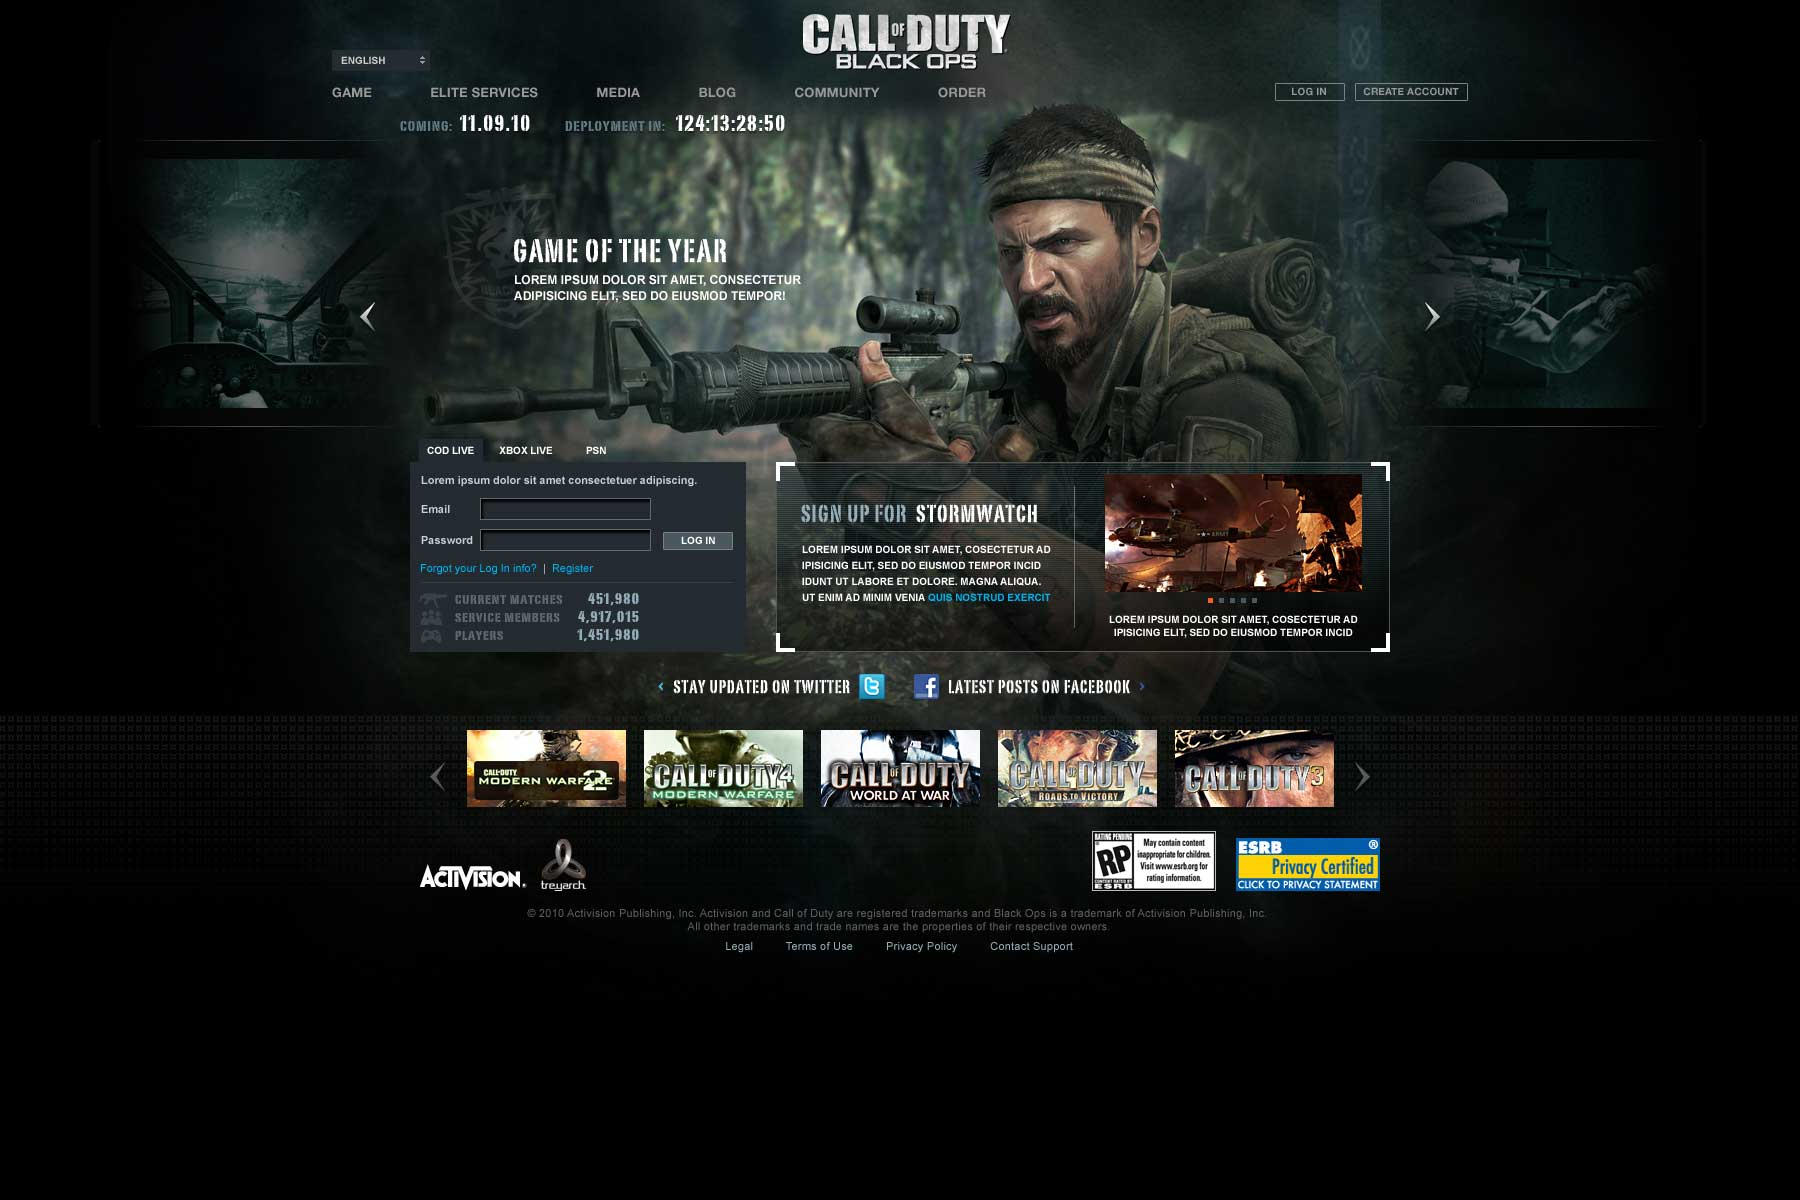 Activision Call of Duty: Blackops Landing Page